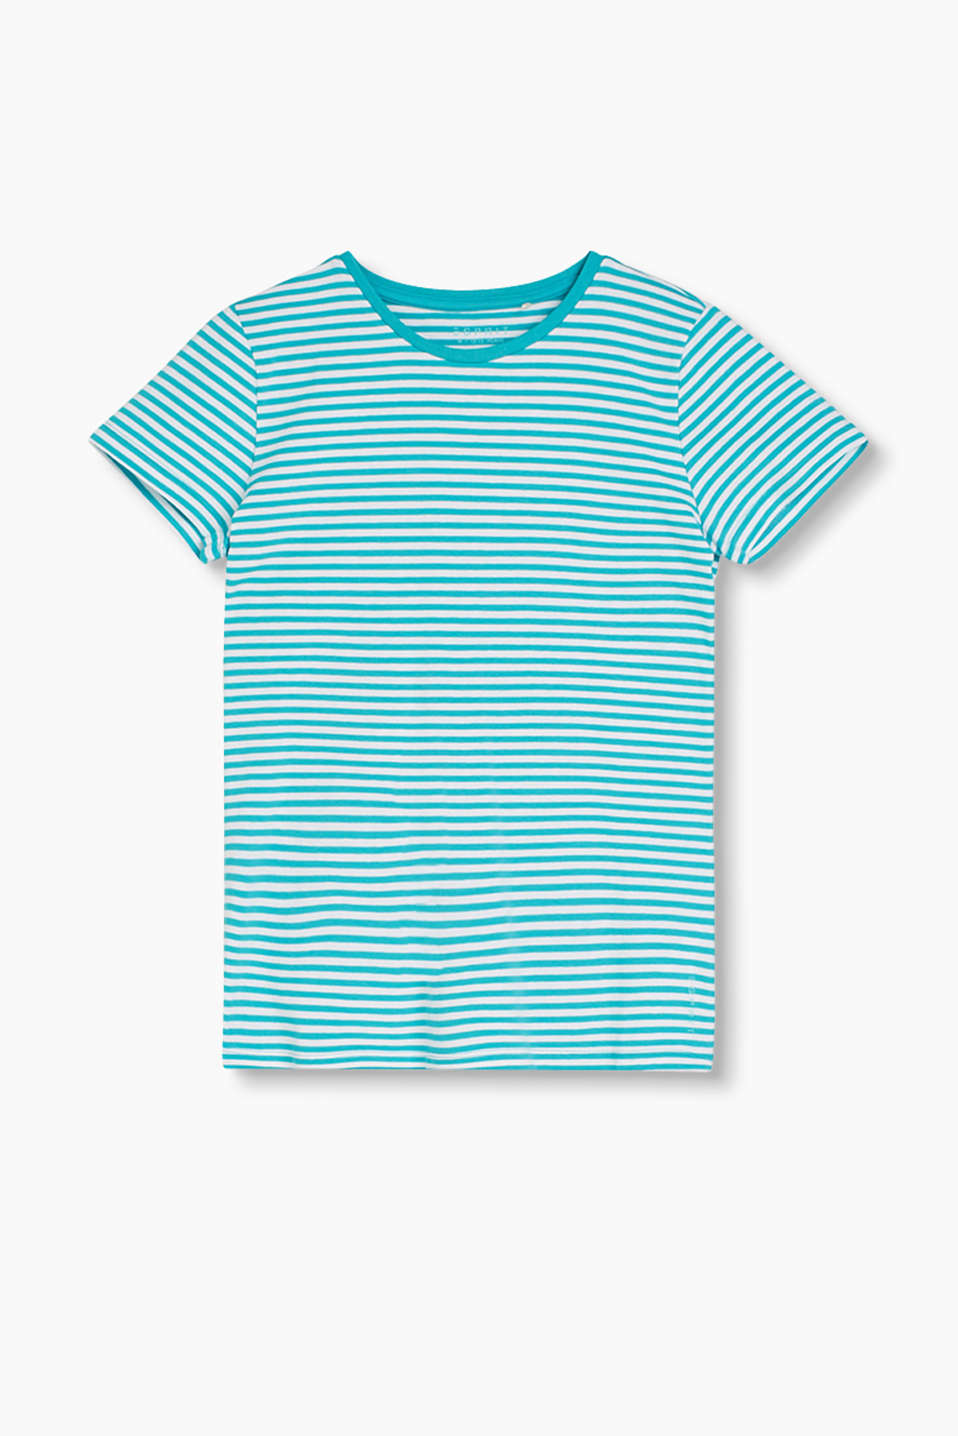 Soft, striped T-shirt made of stretch cotton